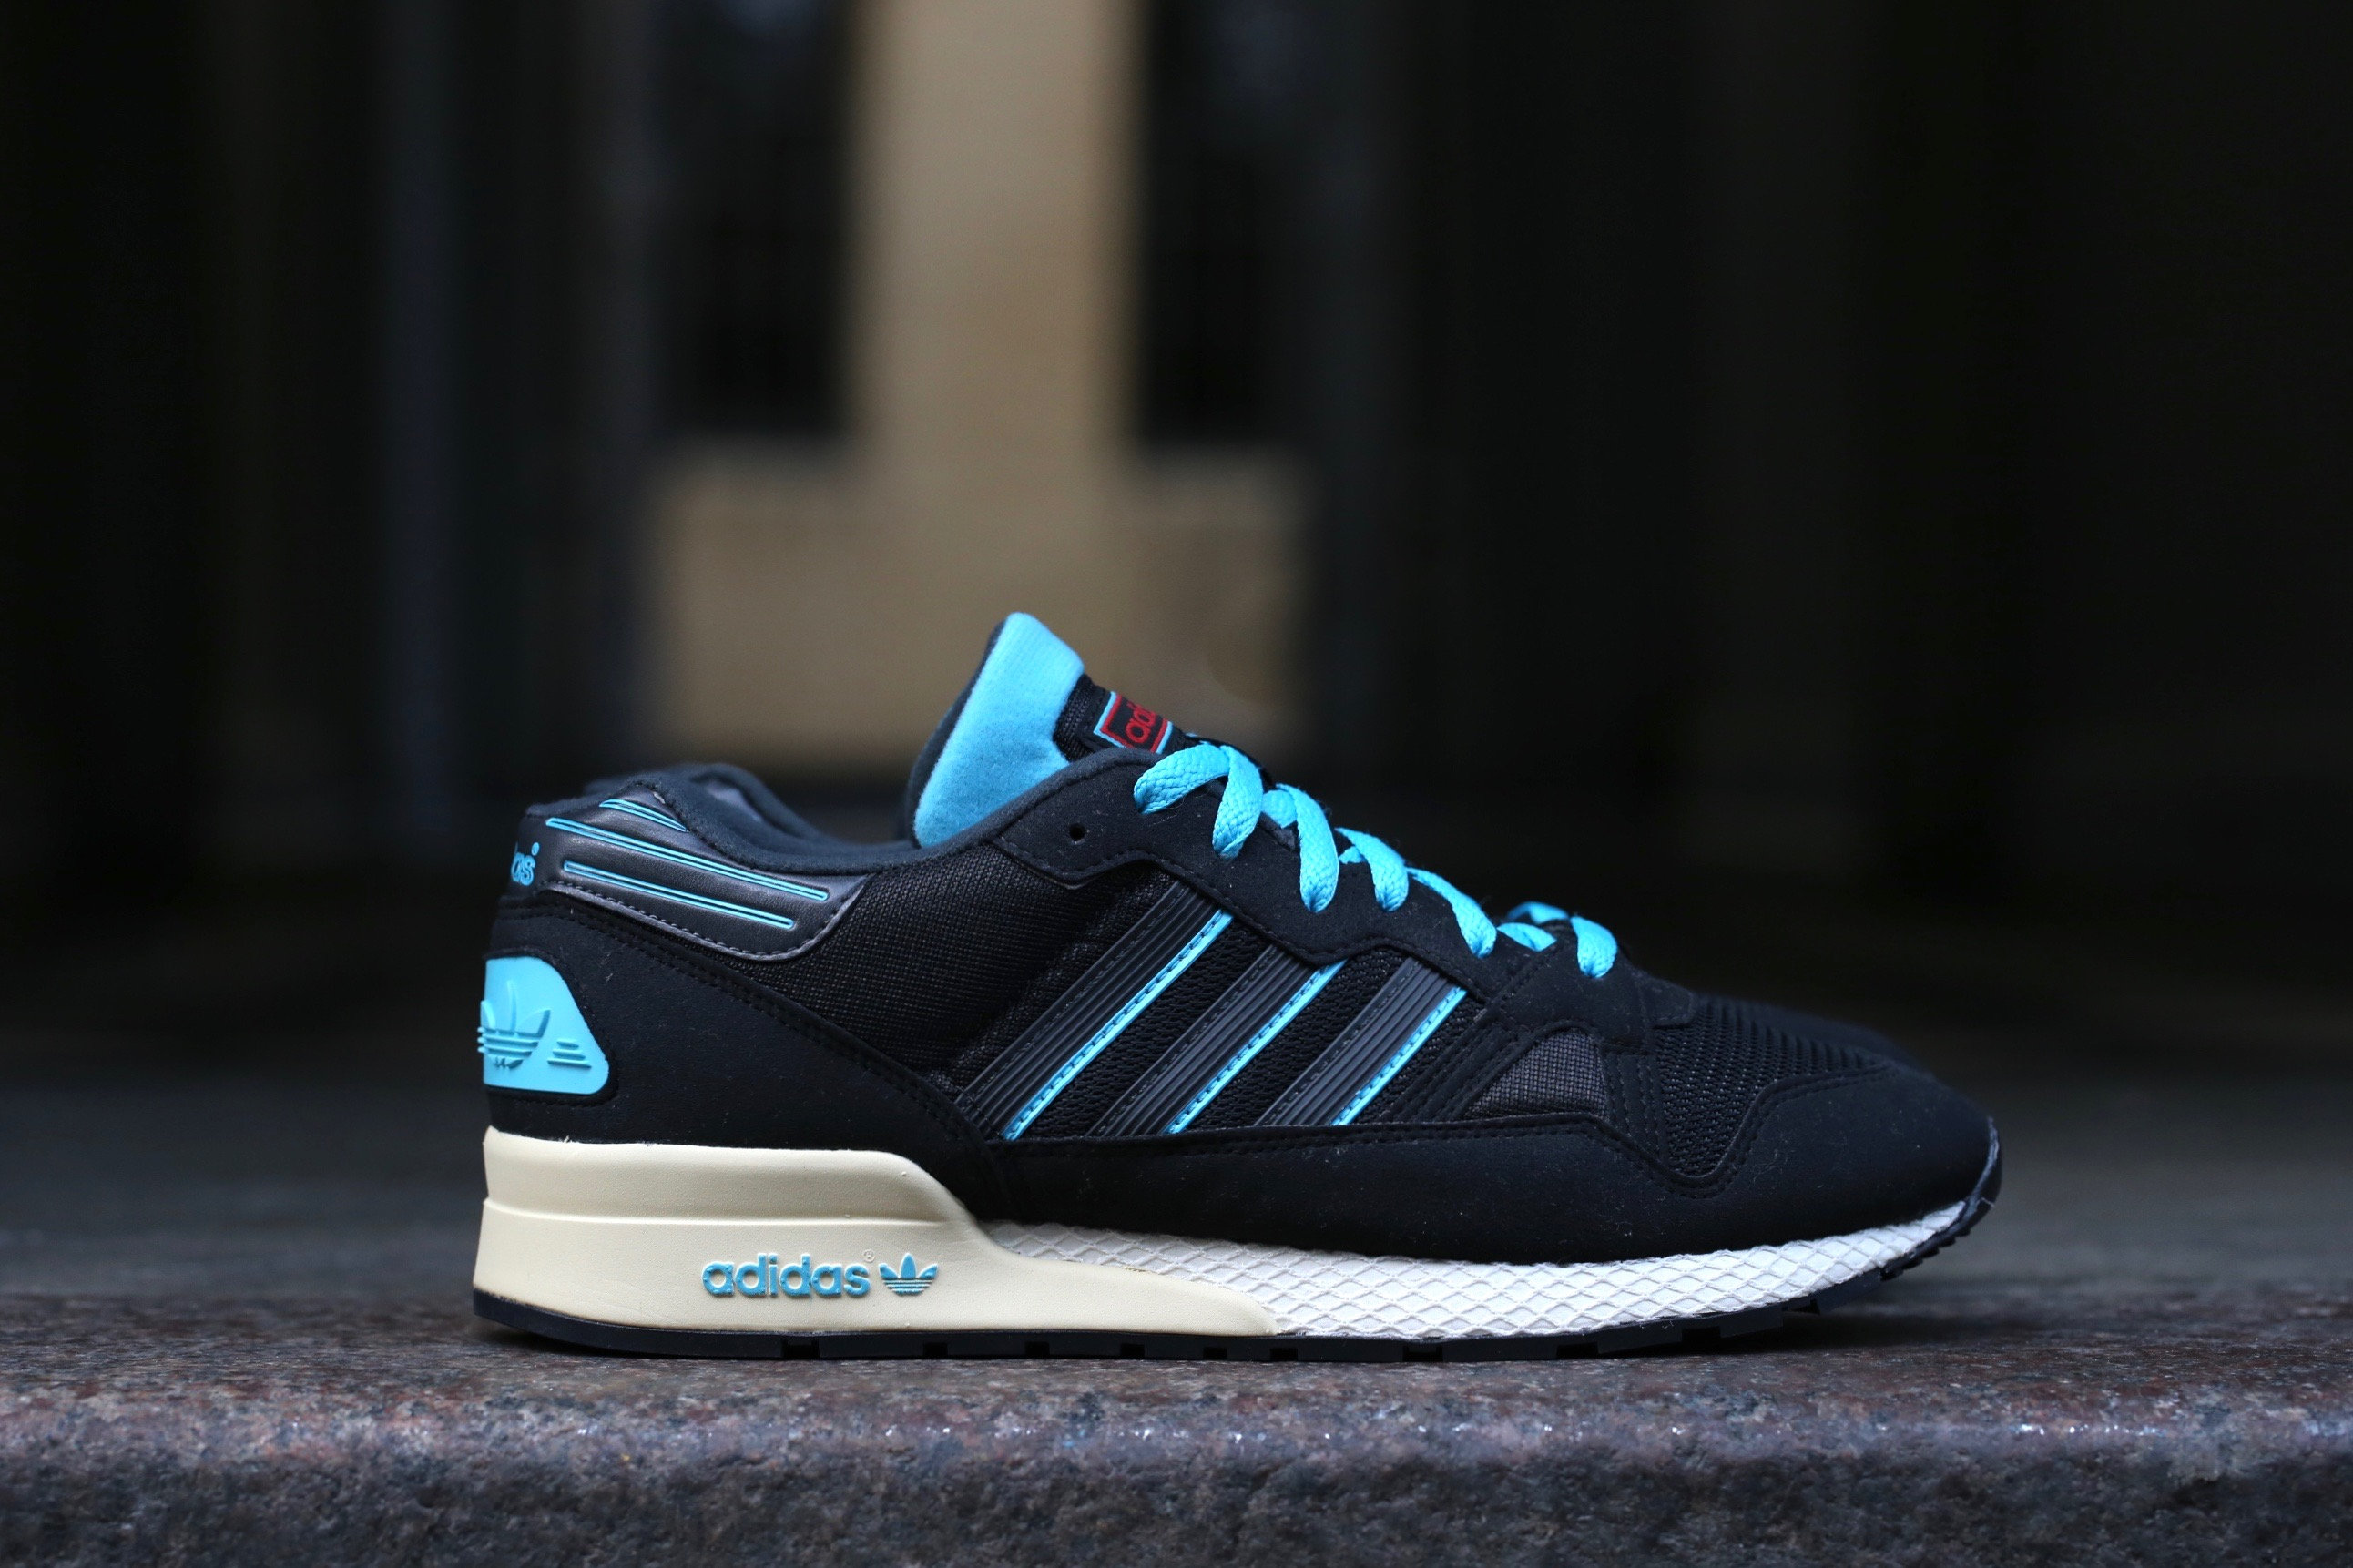 e9218bbd77a68 adidas Originals ZX 710 – Black   Carbon   Samba Blue – STASP